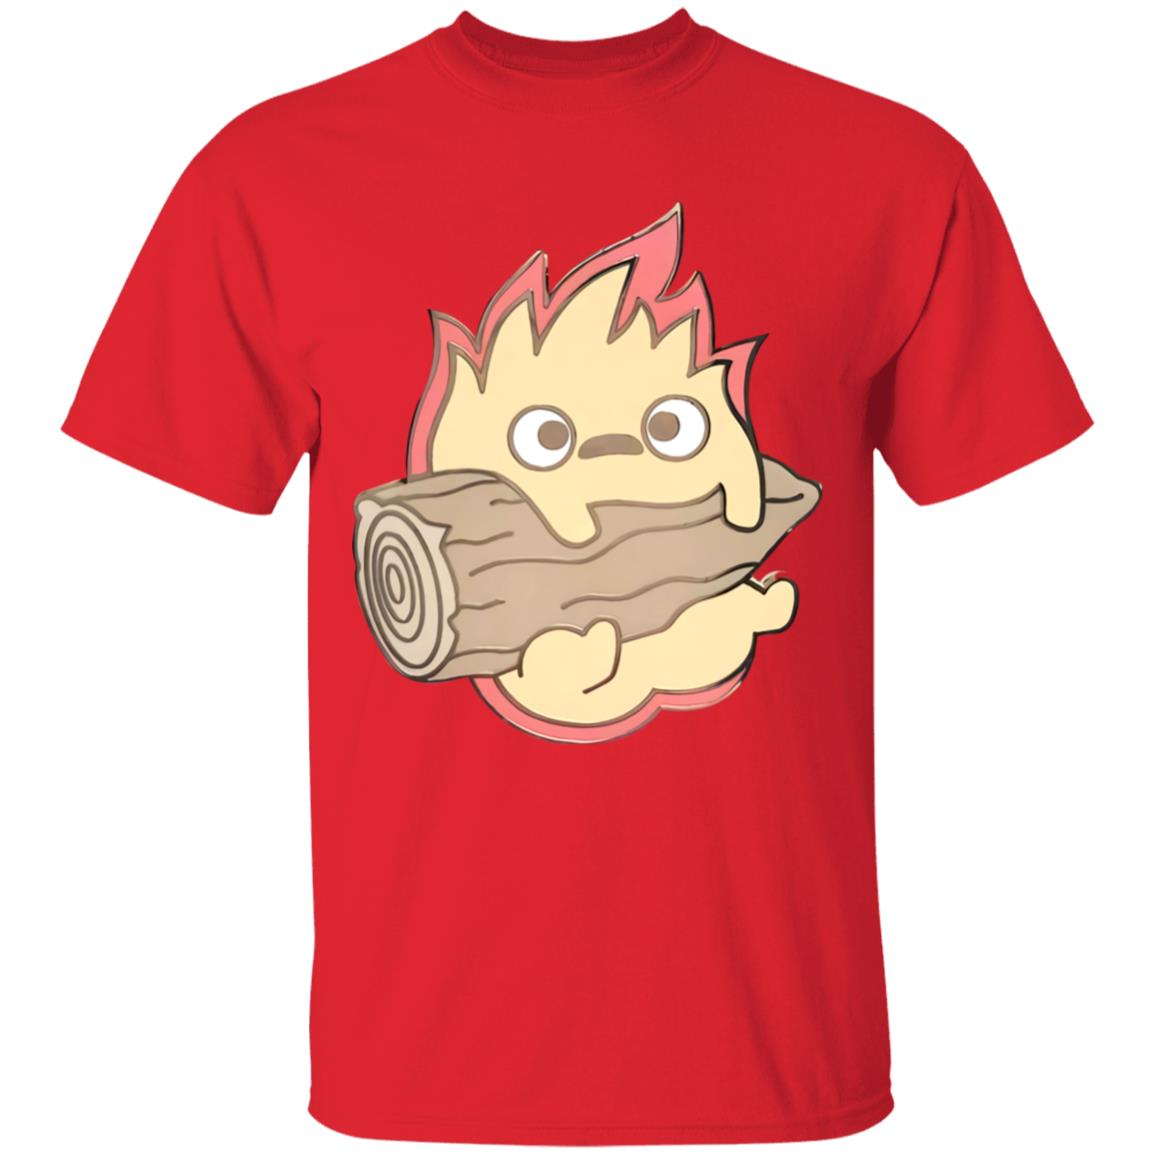 Howl's Moving Castle – Calcifer Chibi T Shirt